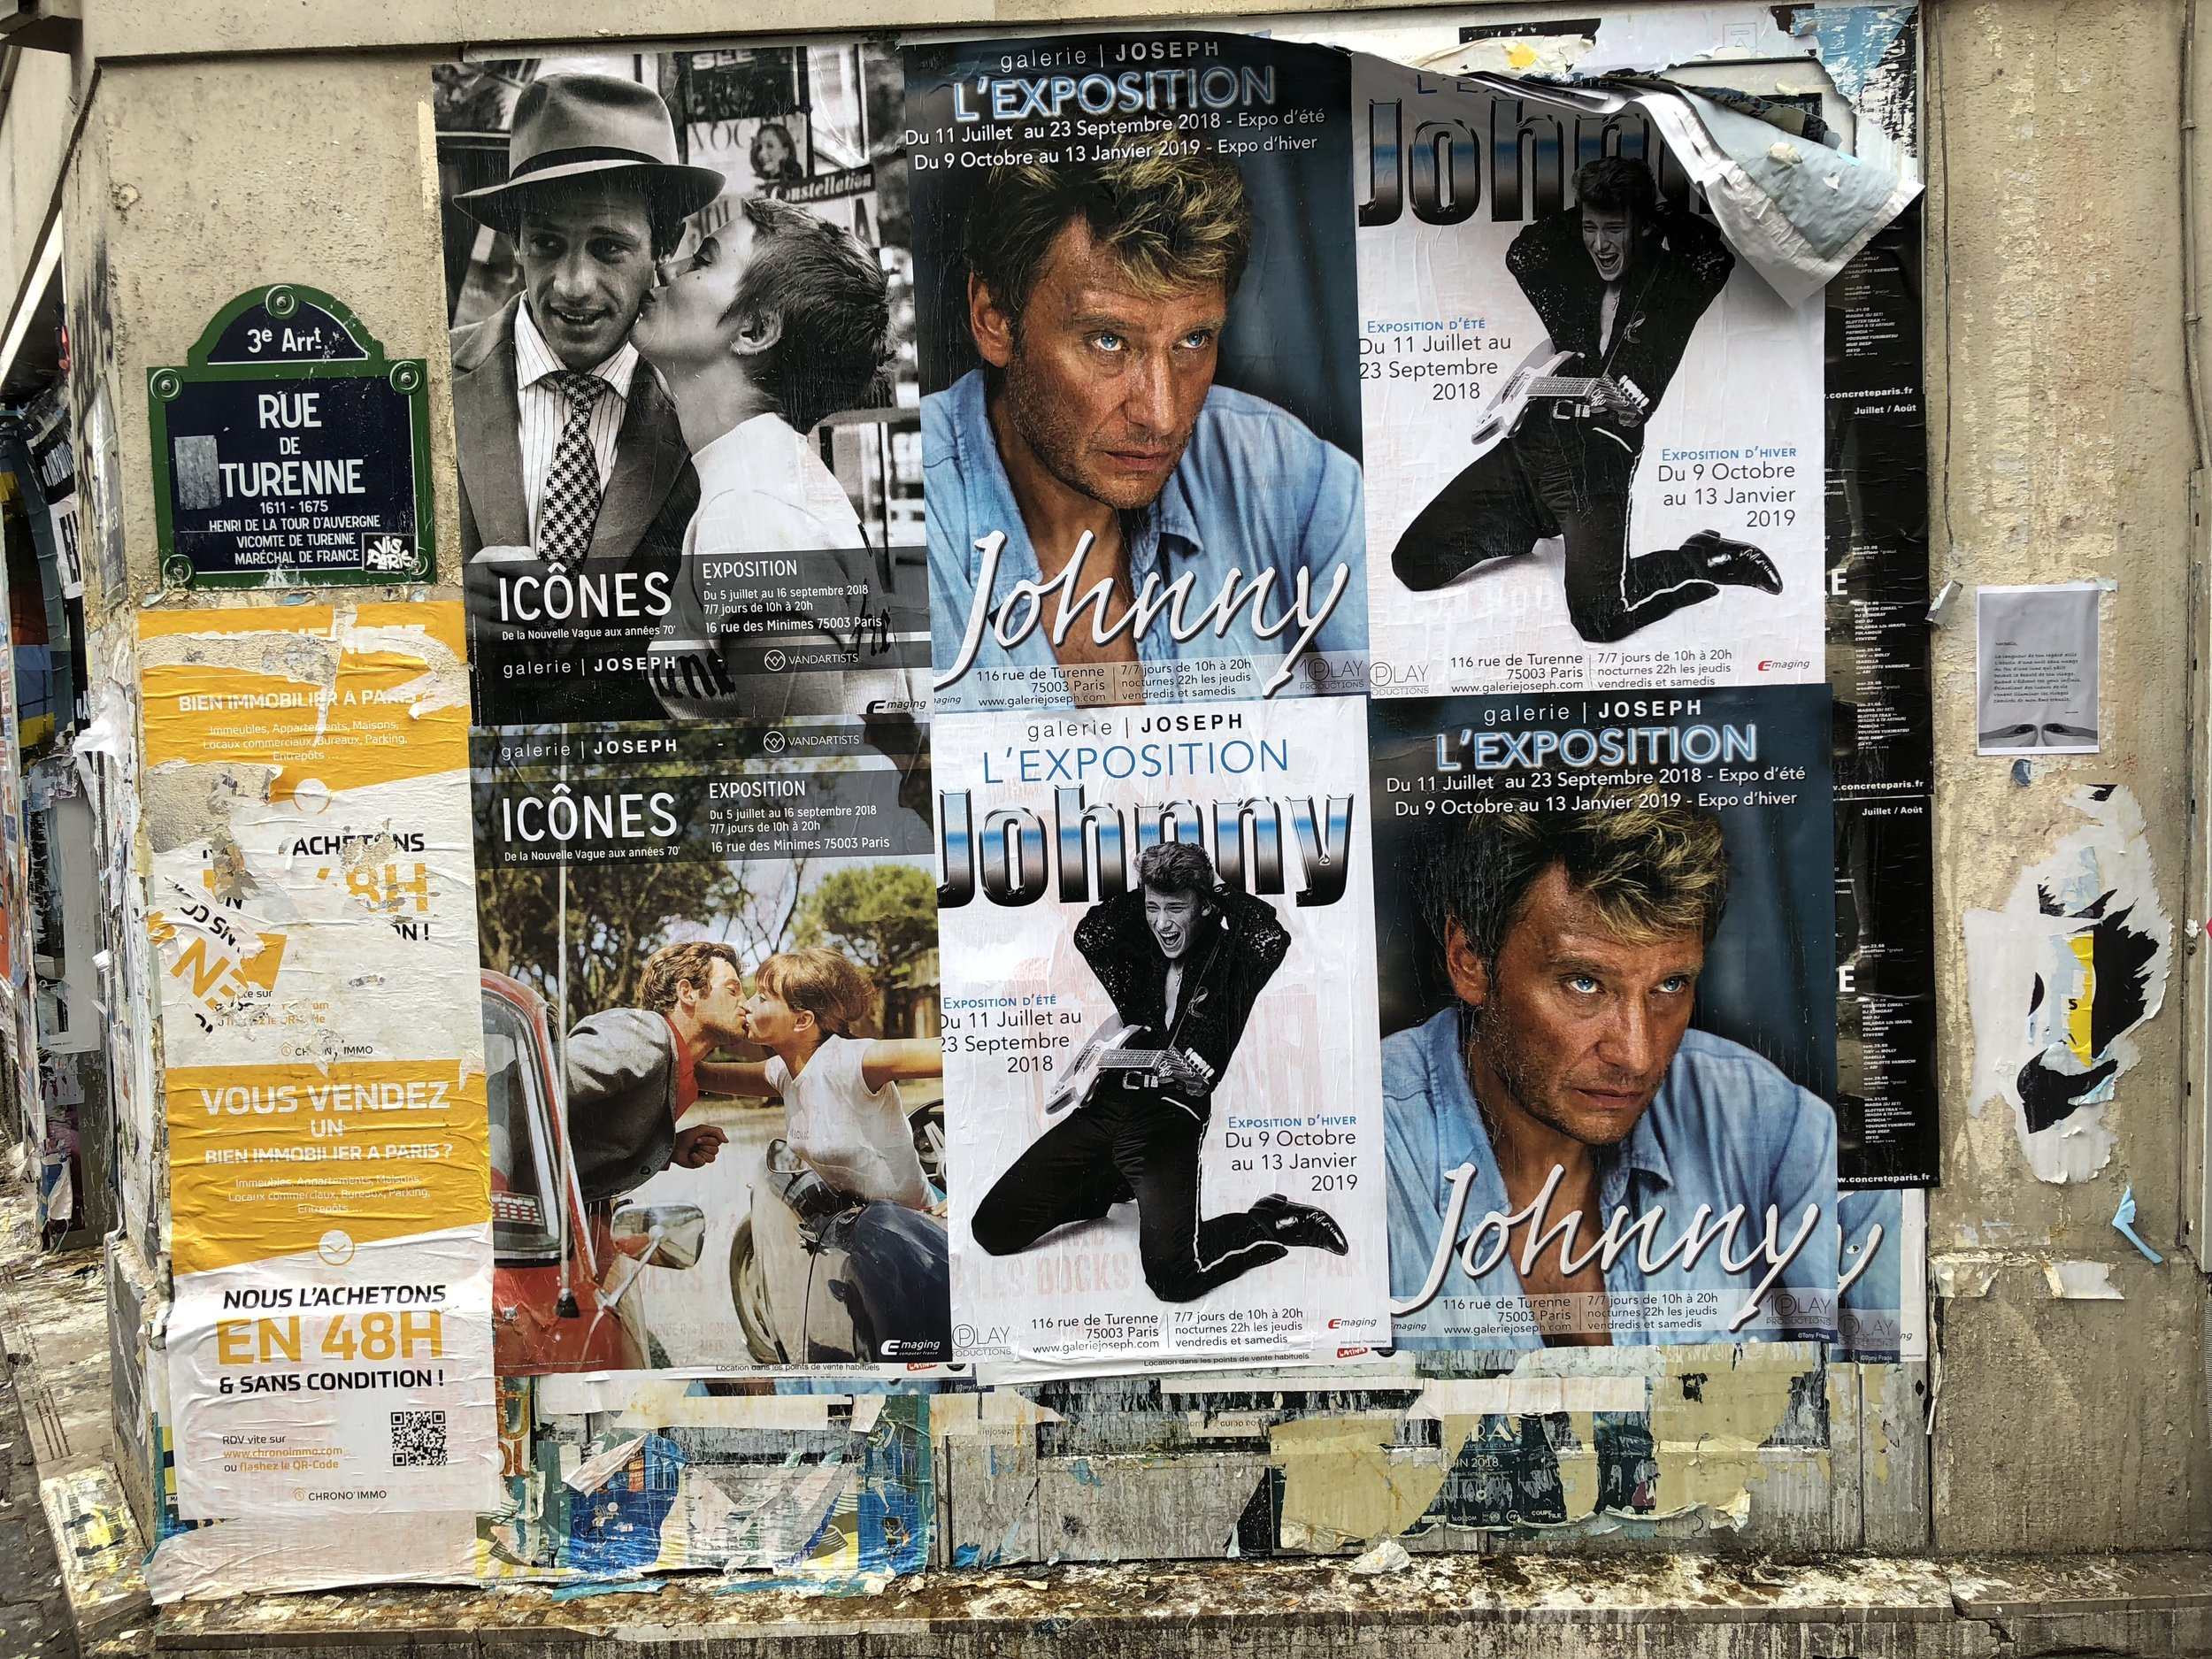 Copy of Wall Covered with Posters